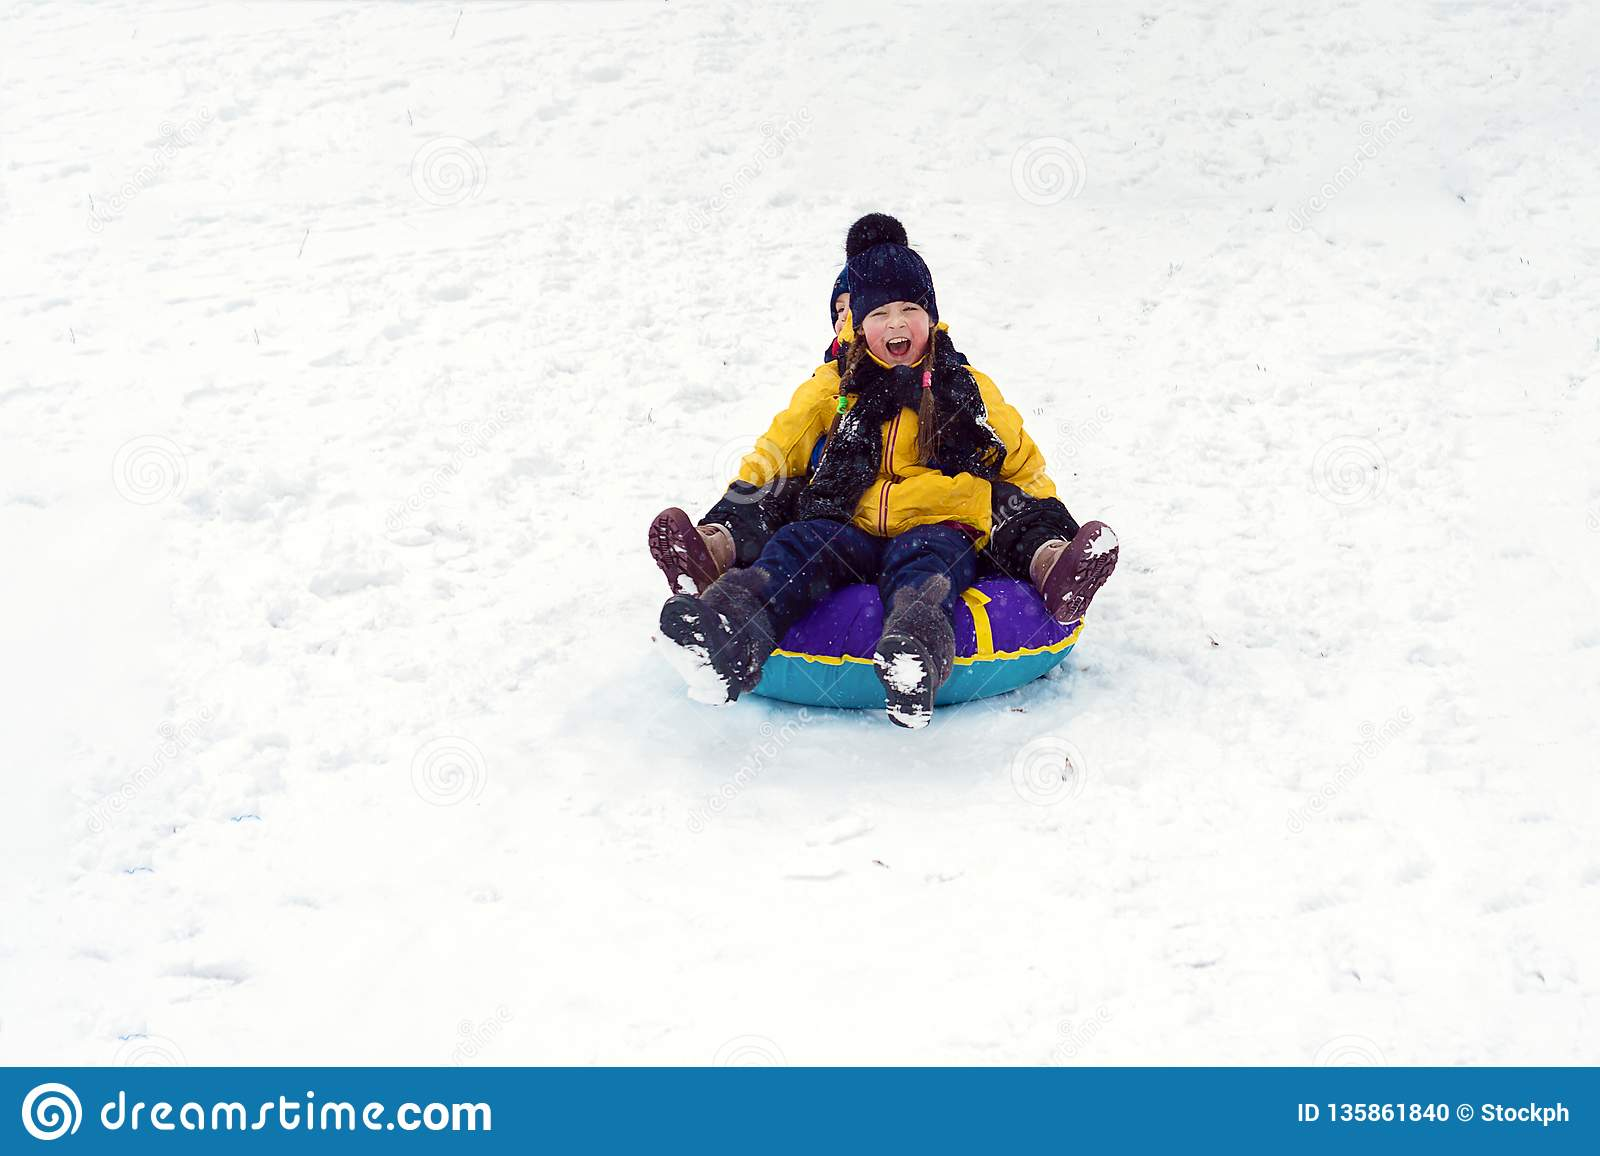 Happy children sledding tubing. brother and sister play together in winter. children slide down the hill. kids laugh and scream